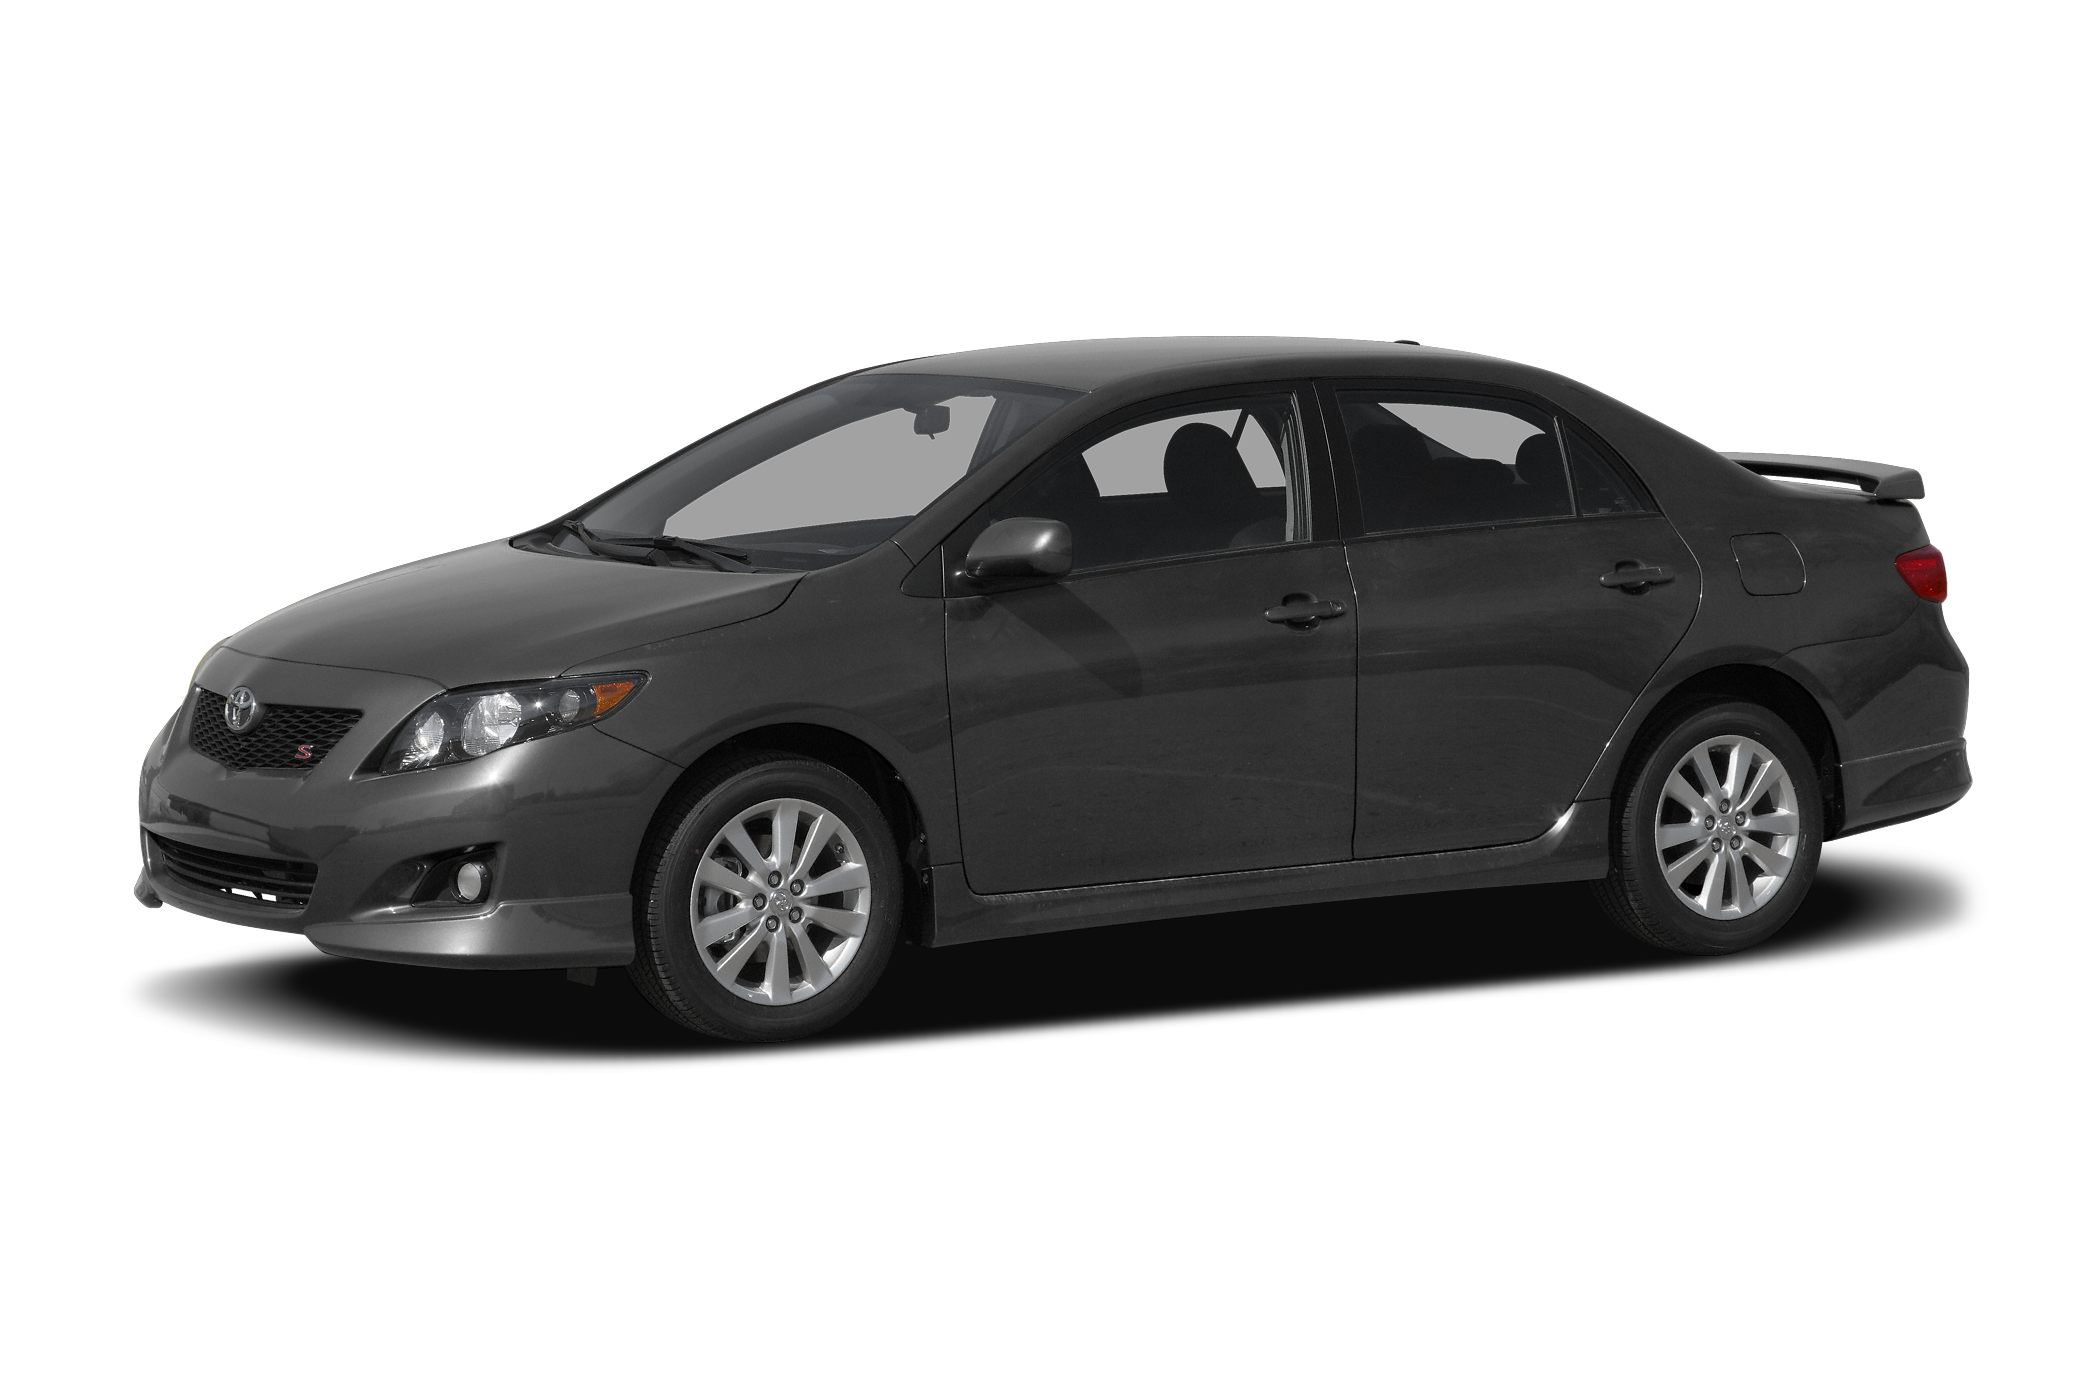 2010 Toyota Corolla S >> 2010 Toyota Corolla S 4dr Sedan Pricing And Options